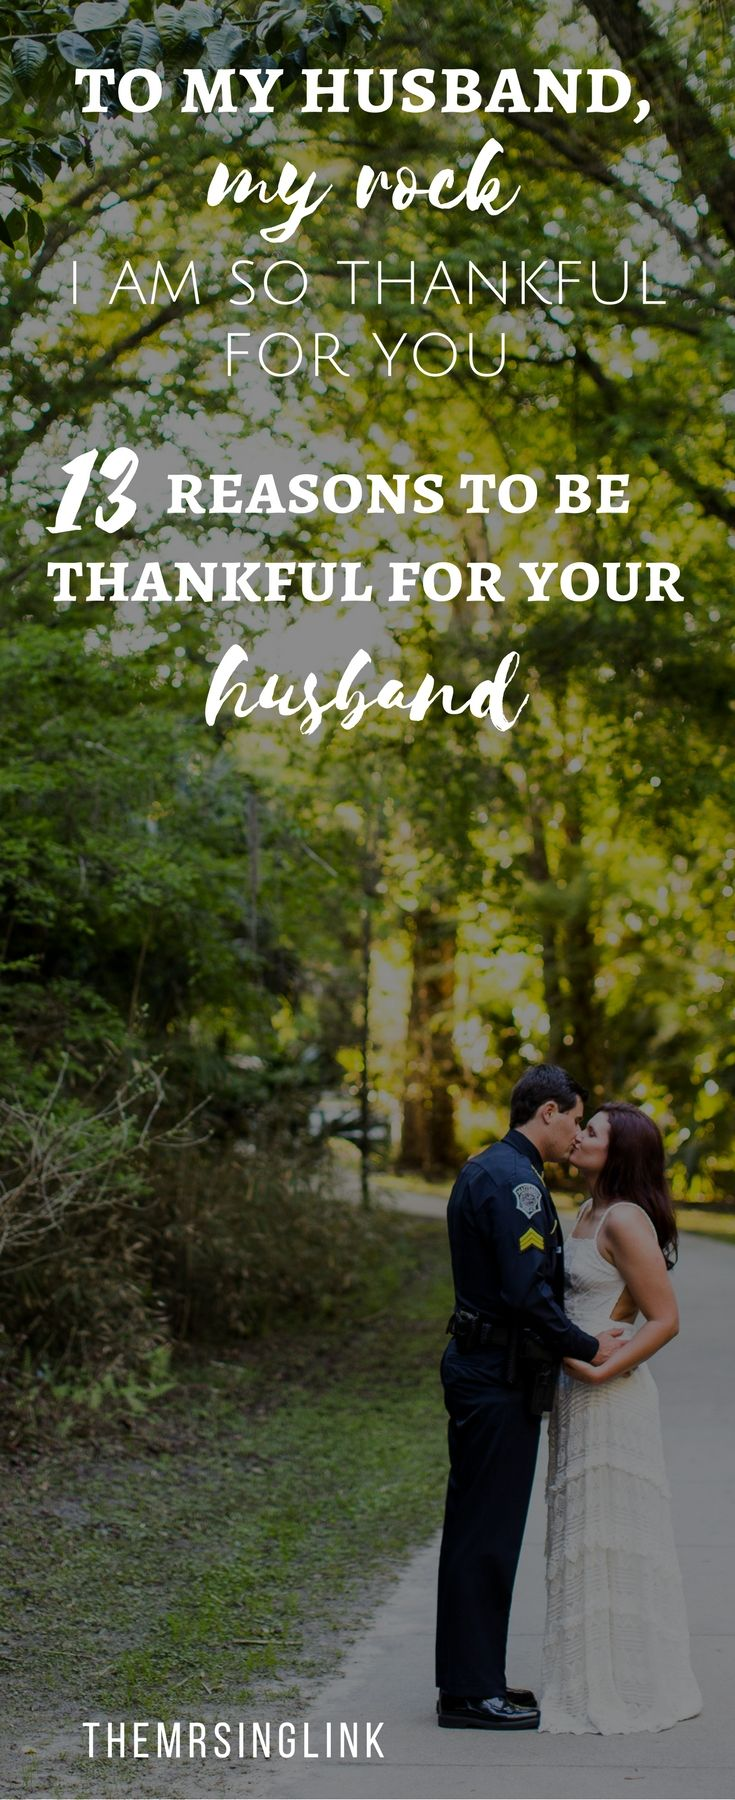 To My Husband My Rock I Am So Thankful For You Reasons To Be